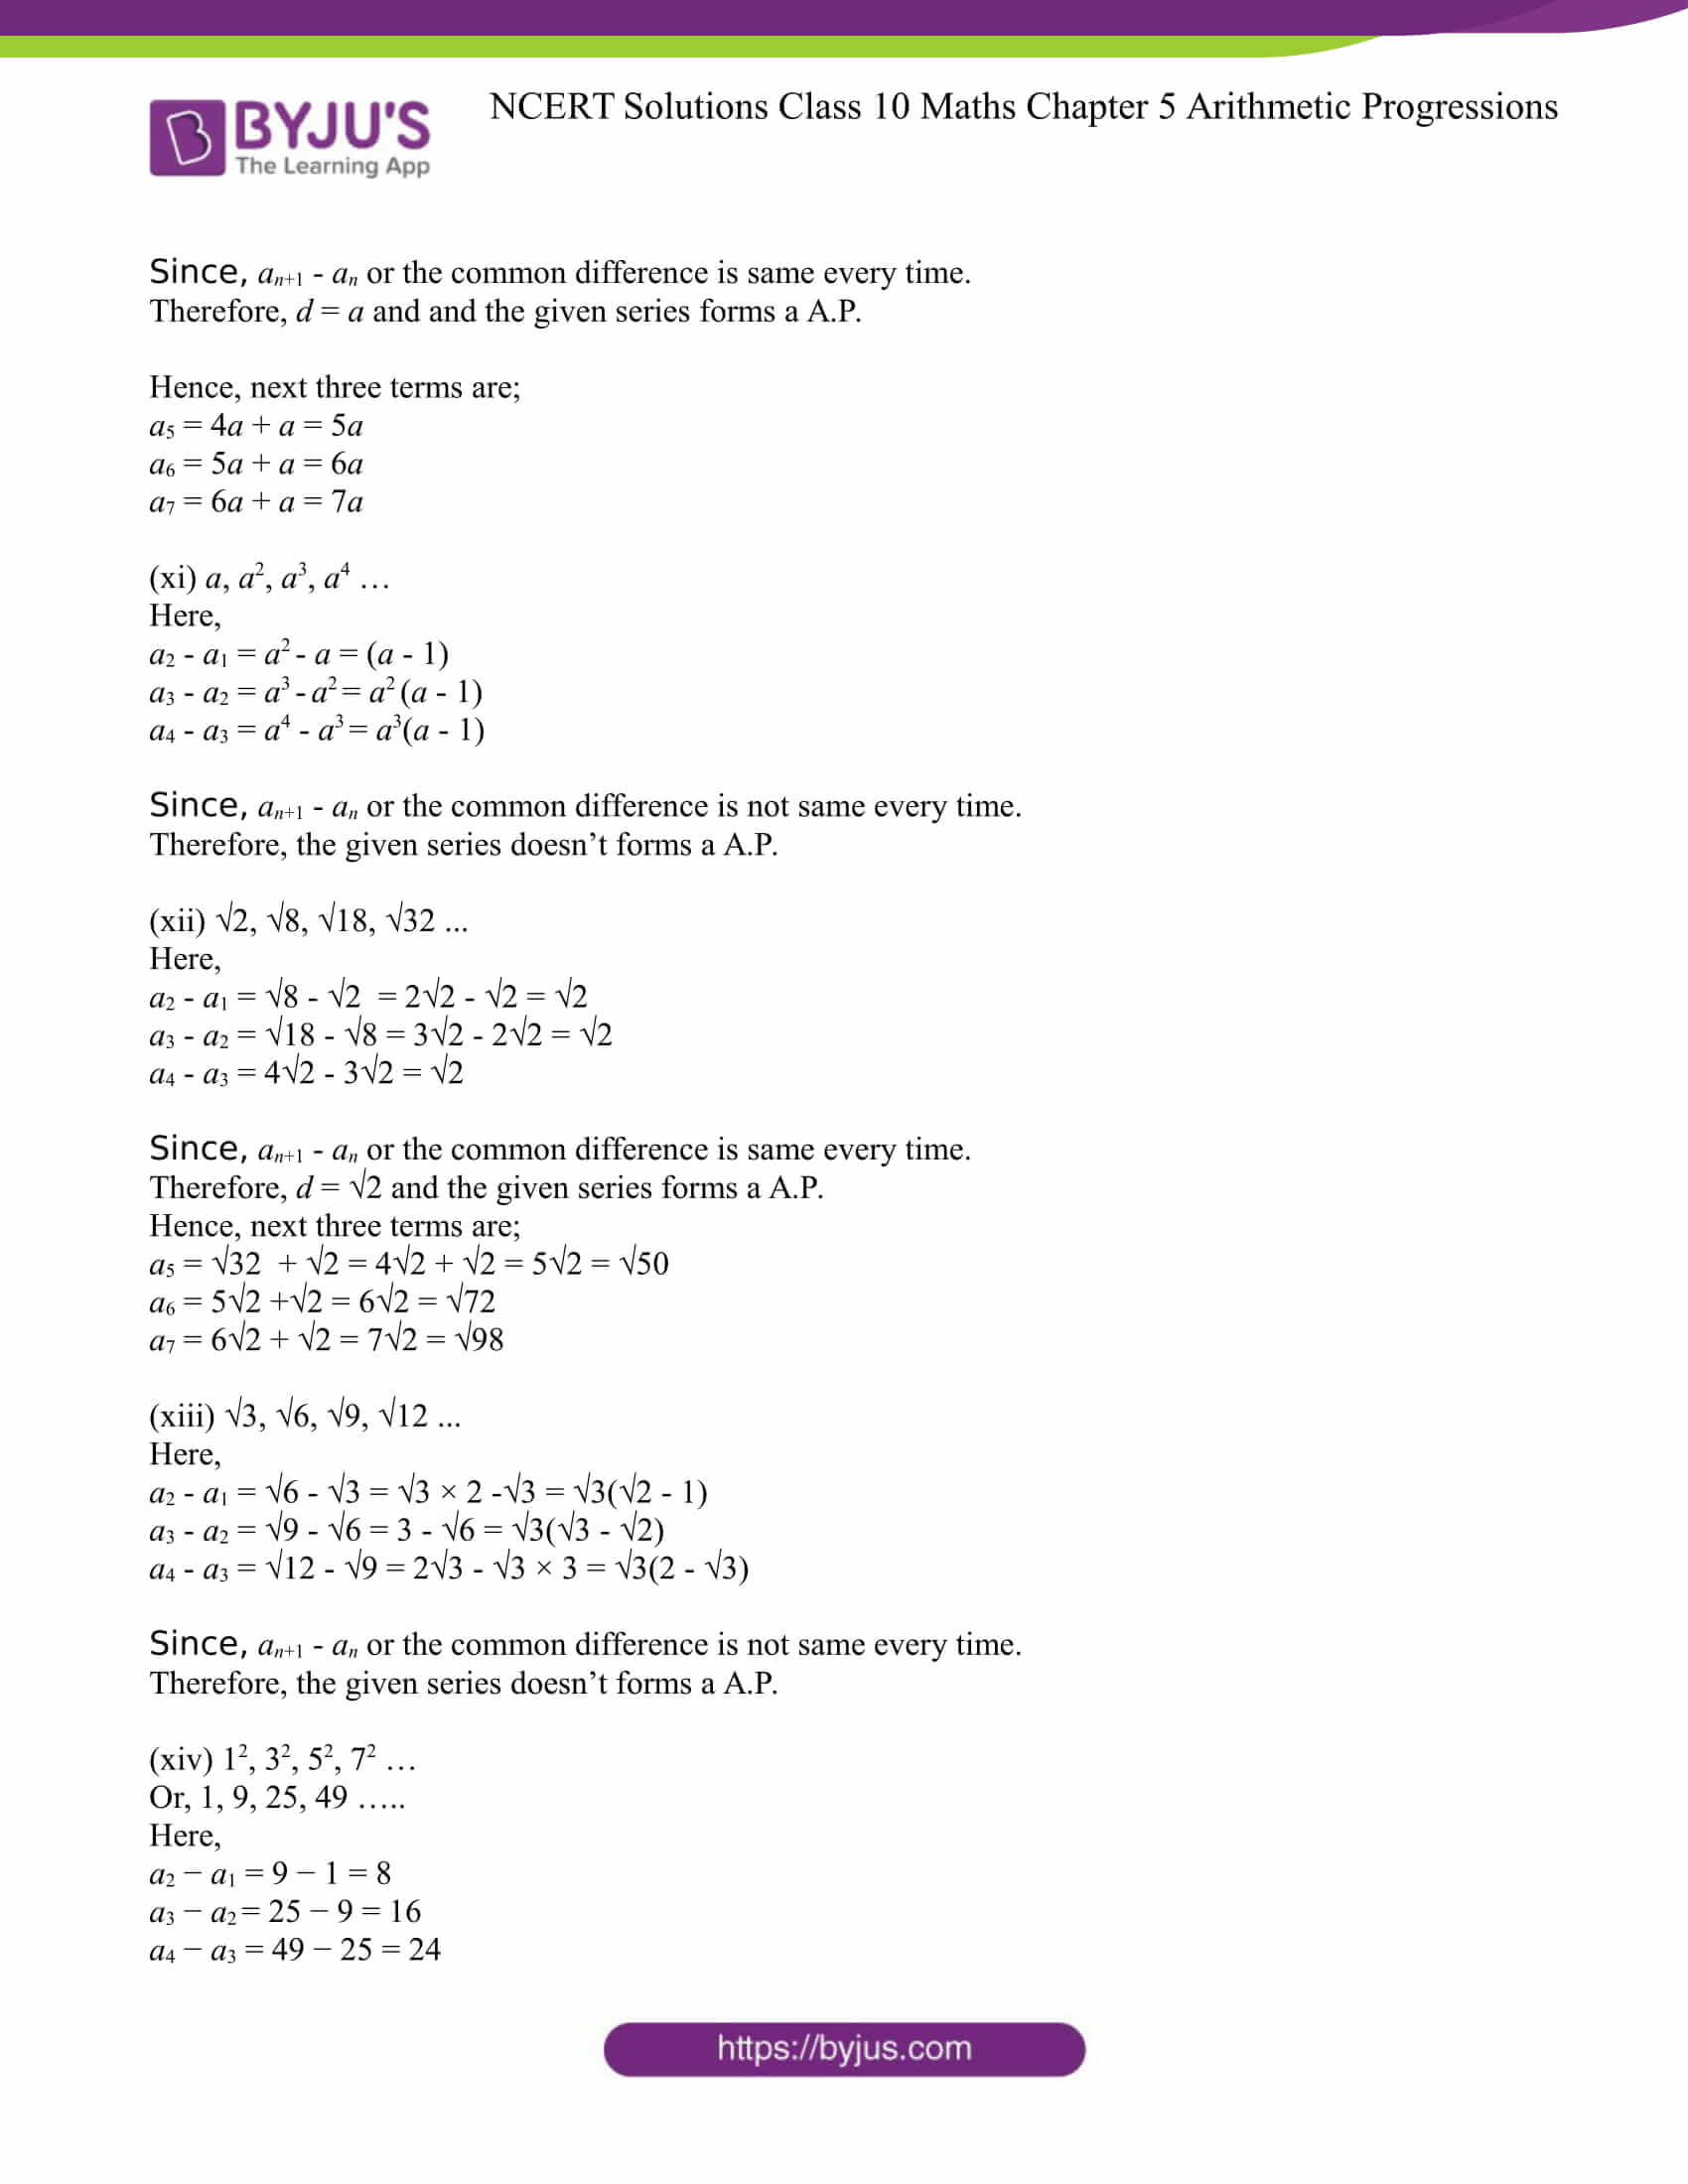 NCERT Solution for CBSE class 10 Maths Chapter 5 Arithmetic Progressions Excercise 5.1 Part 8